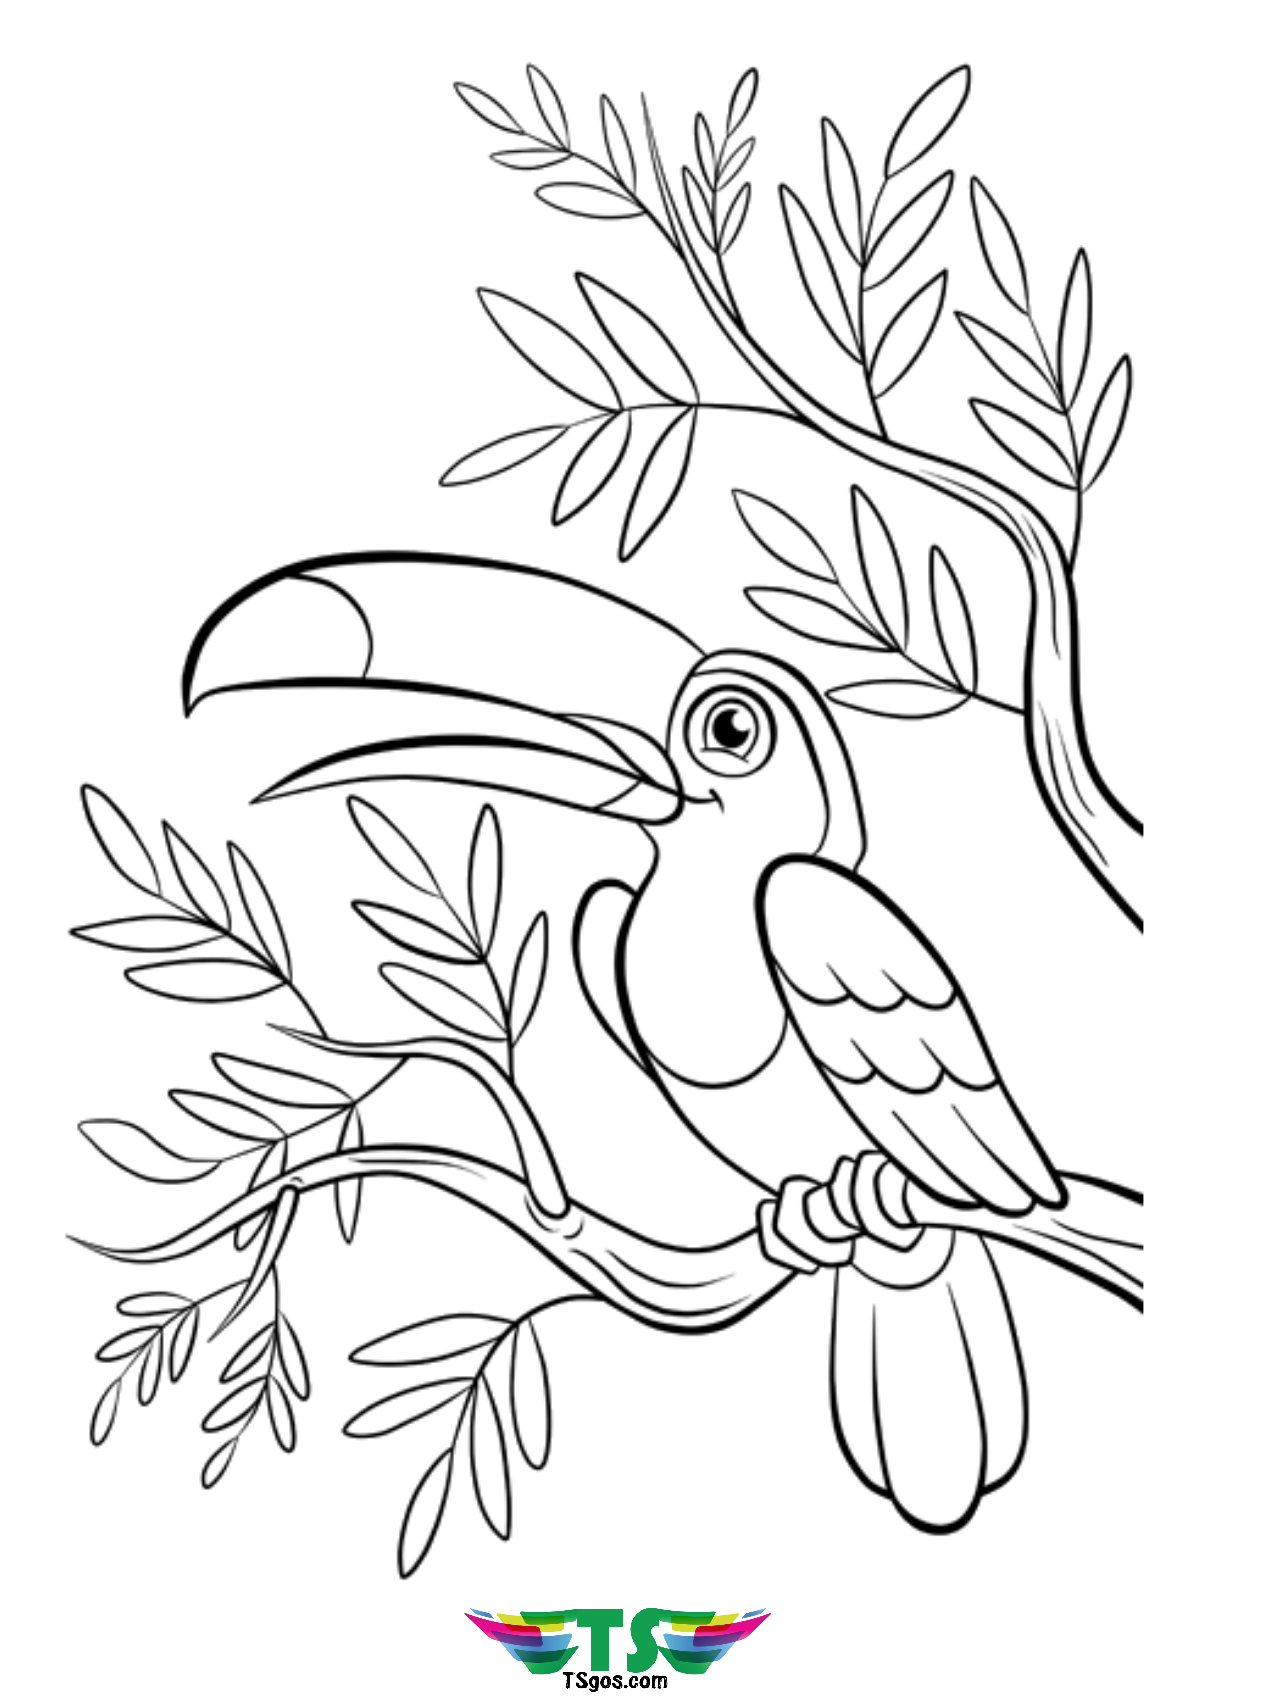 bird colouring pictures birds coloring page happy family art bird colouring pictures